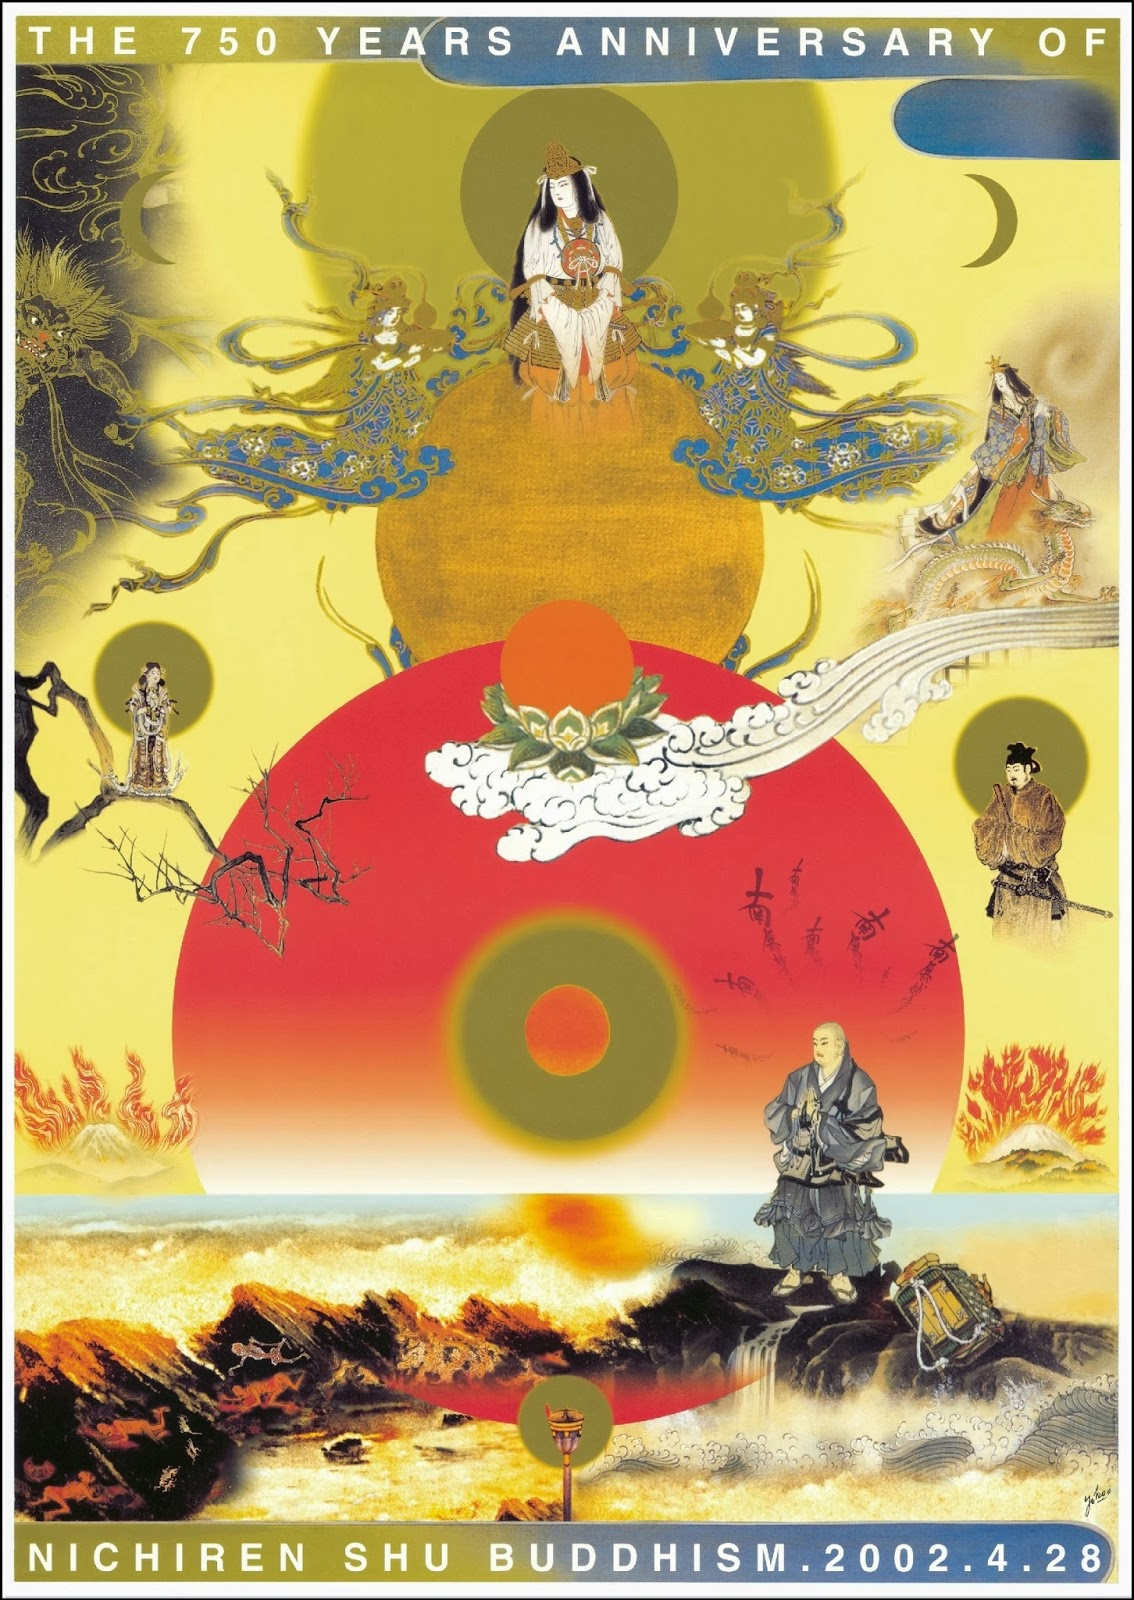 montage poster of various traditional Japanese folkloric characters and symbols